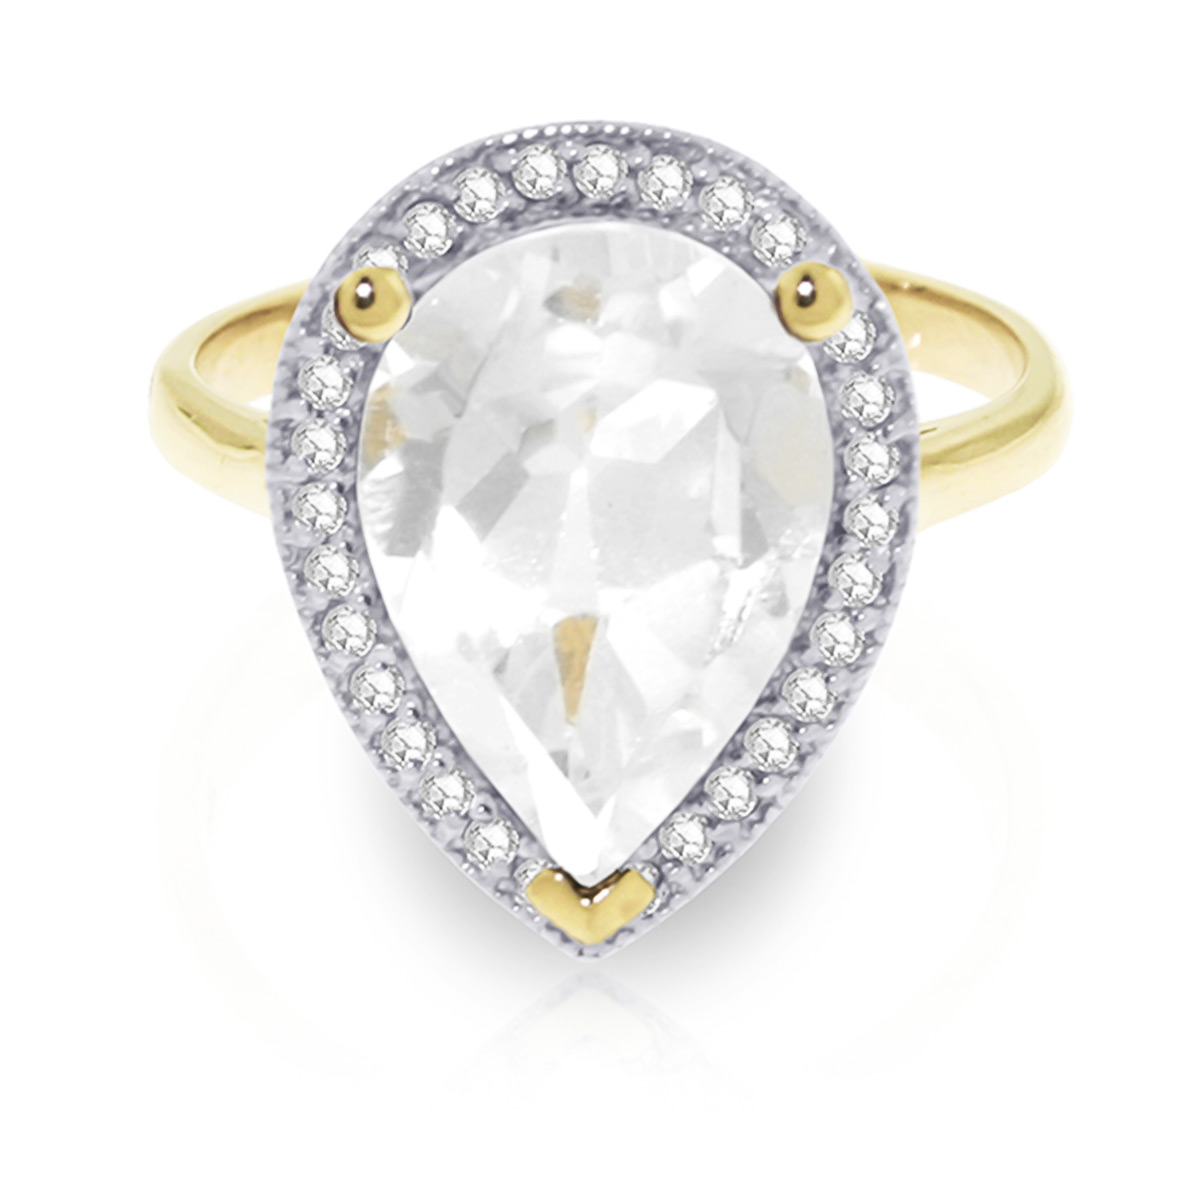 White Topaz and Diamond Halo Ring 5.45ct in 9ct Gold